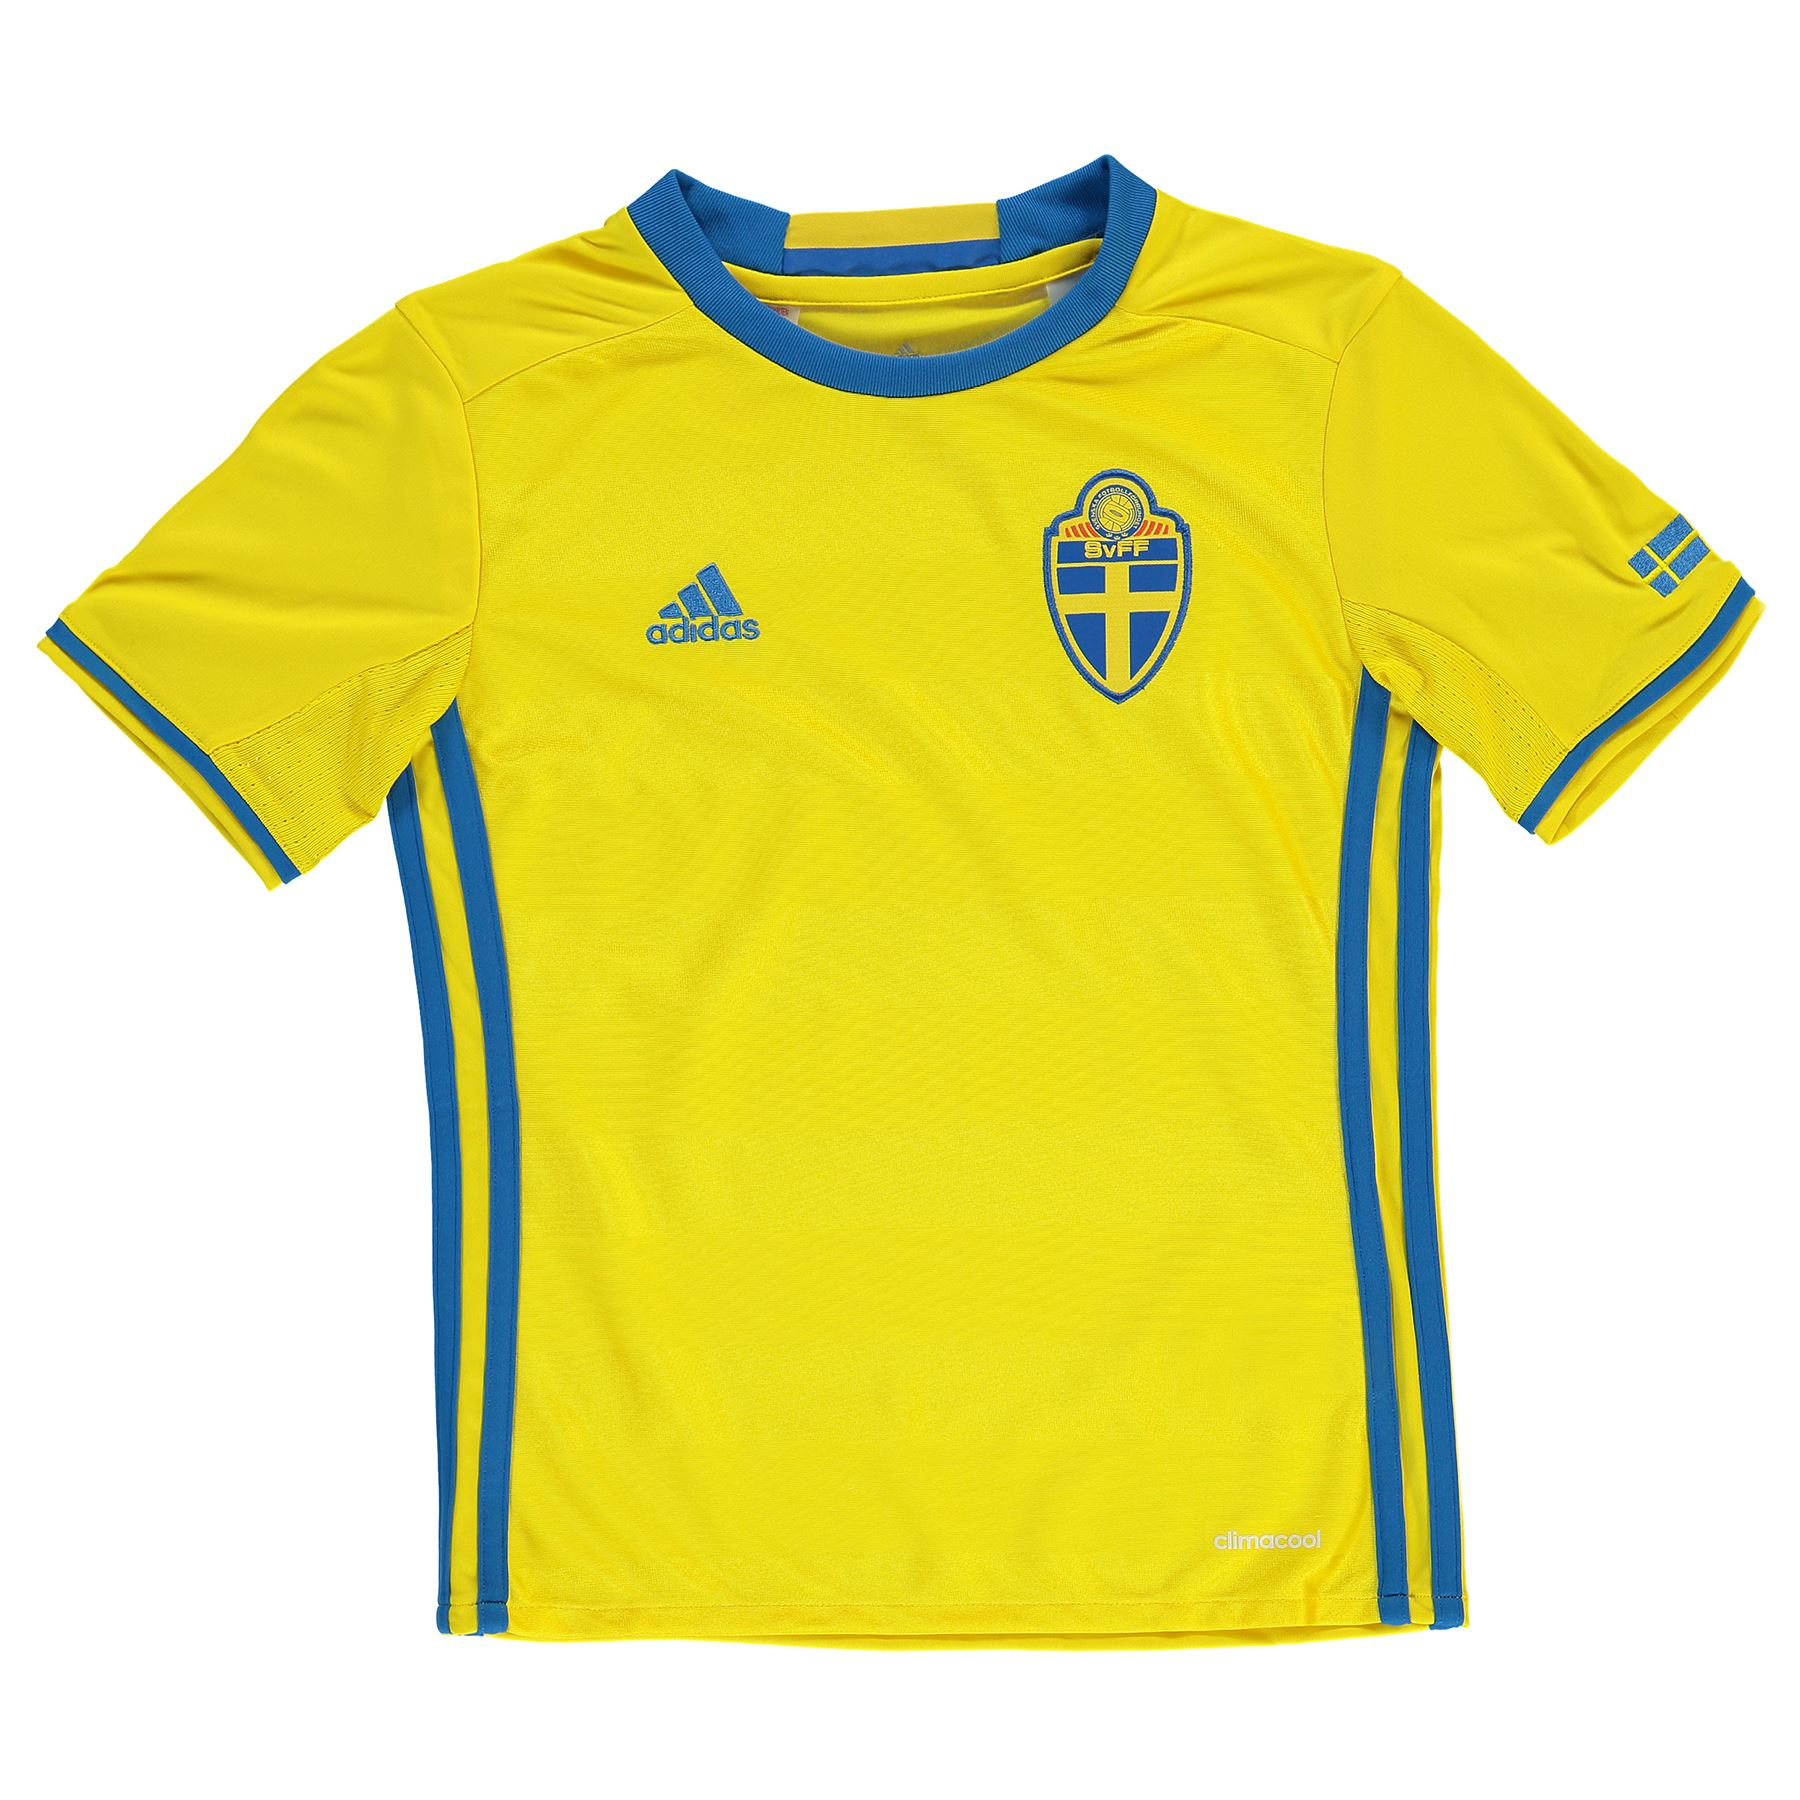 Buy the cheap soccer jerseys, soccer shirts, soccer kits, training kits with wholesale price. Free Shipping Worldwide! KIDS JERSEYS. CLUB KITS. AC Milan Arsenal Barcelona Bayern Munich Borussia Dortmund Chelsea Juventus Manchester United Liverpool Manchester City Real Madrid Tottenham Hotspur. NATIONAL KITS.